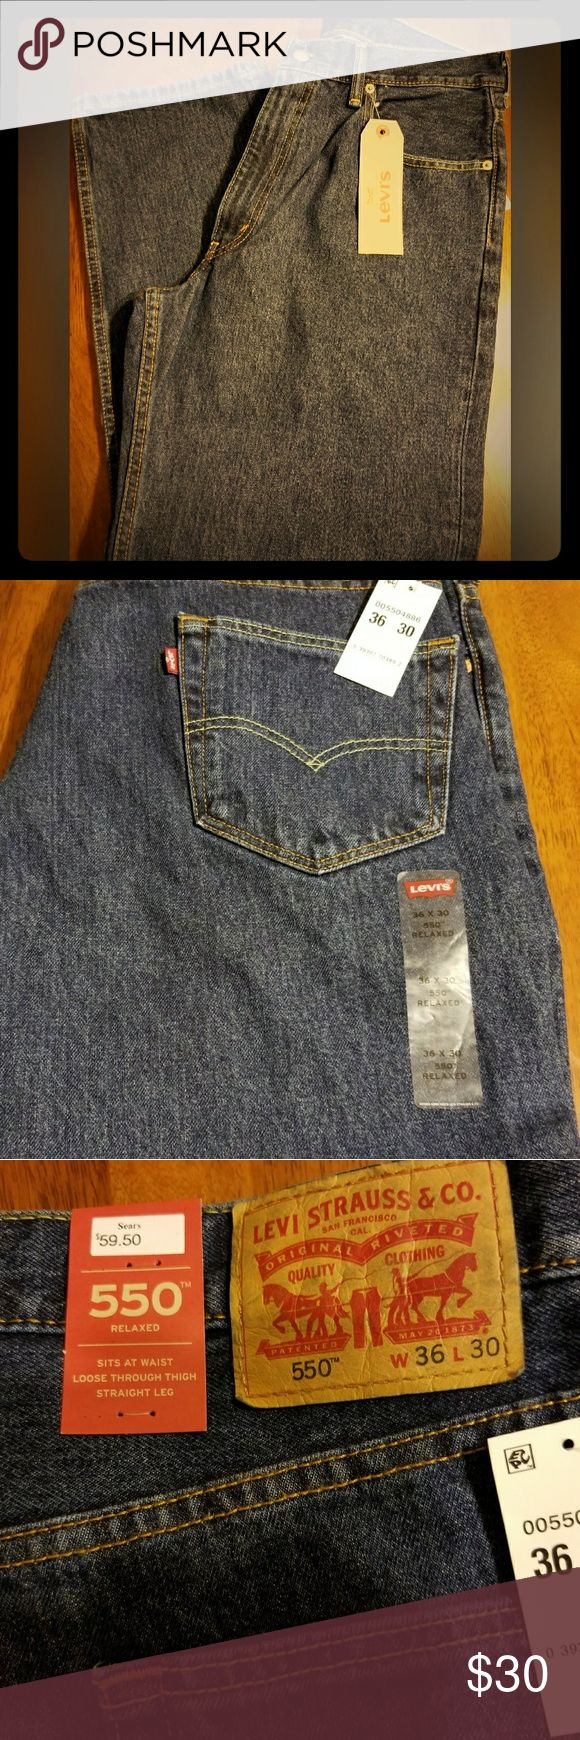 Men's Levi 550 Jeans Men's NWT Levi 550 Jeans; color blue; relaxed fit; never worn(not even tried on); W 36 L 30; No trades or offers accepted on this item Levi's Jeans Relaxed